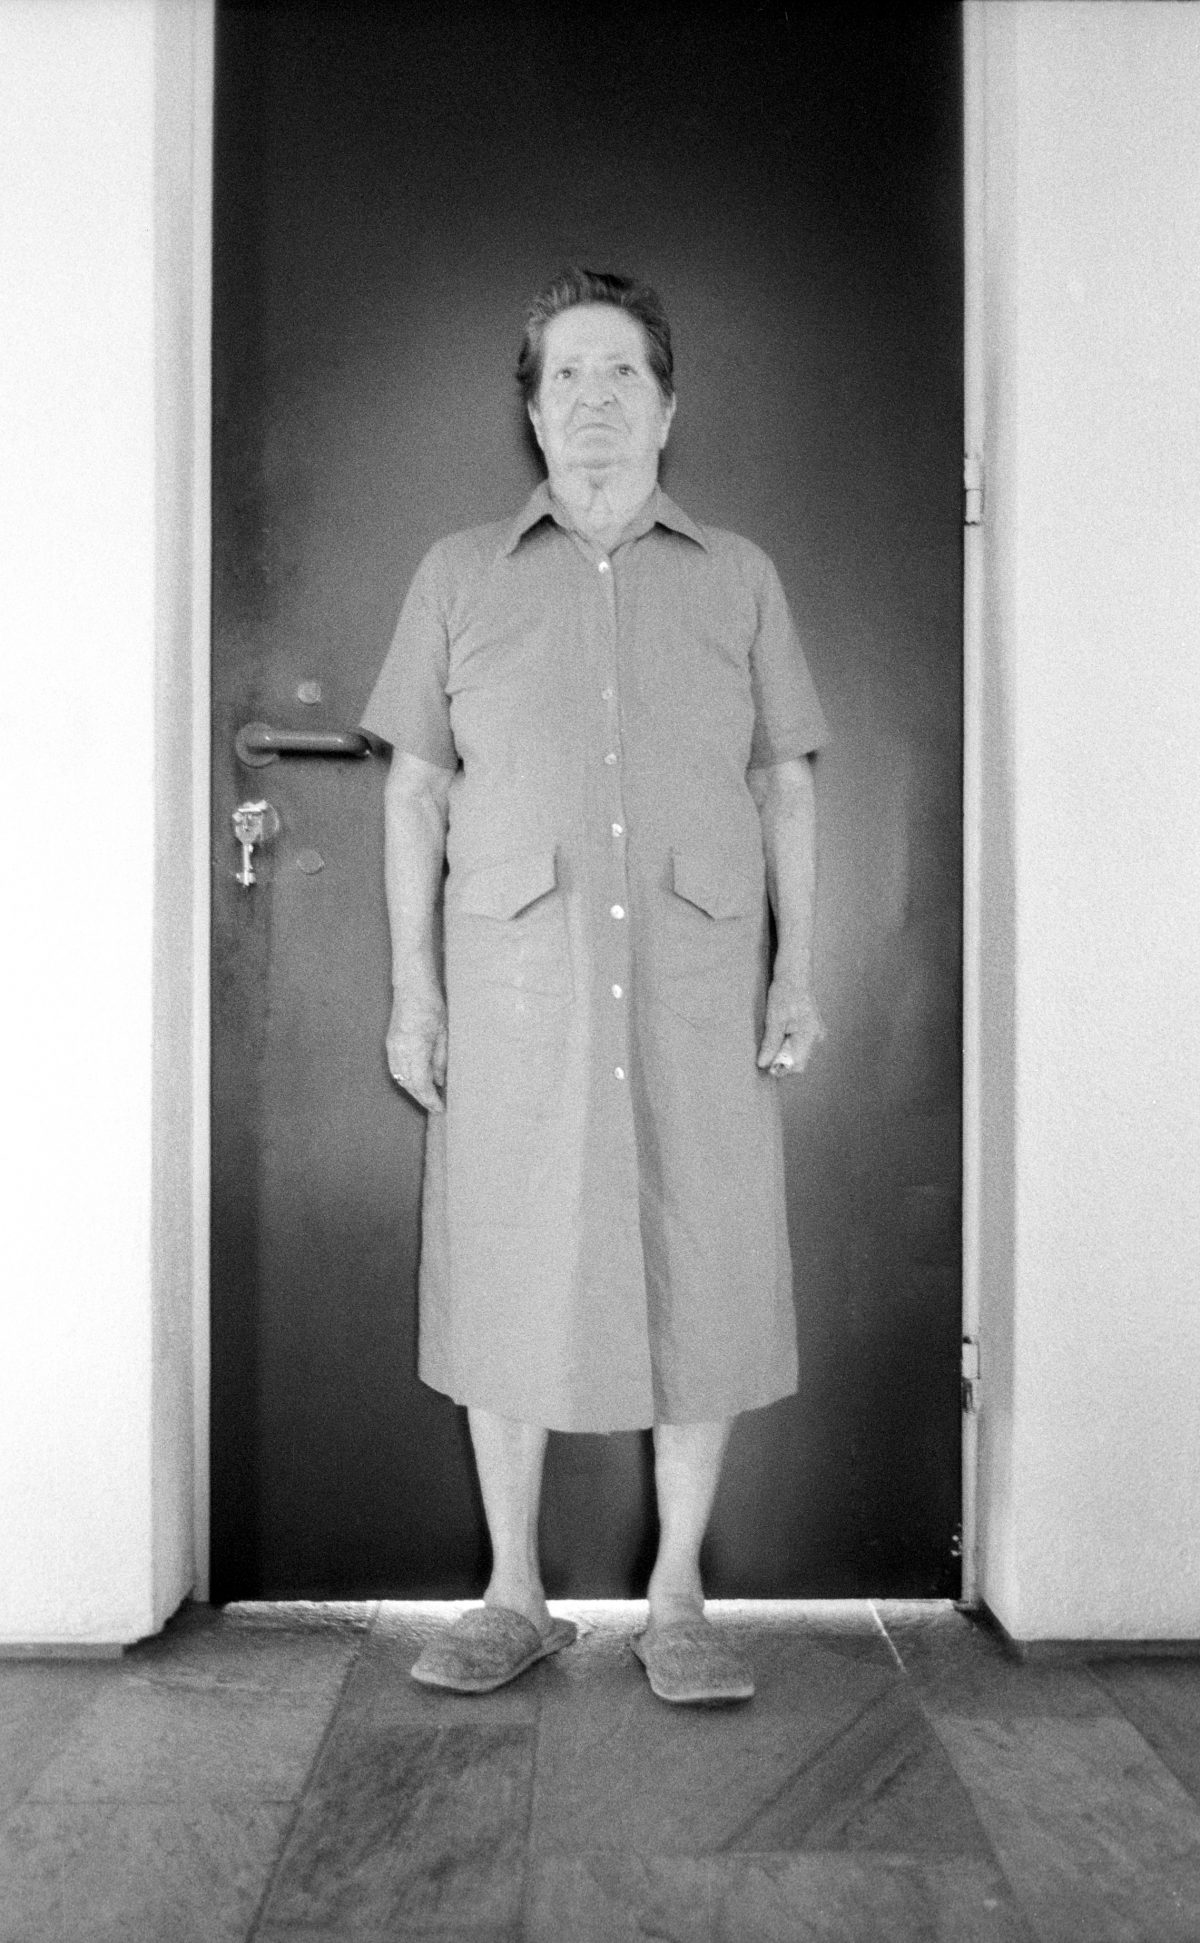 Grandmother, female, photoshoot, door, bw